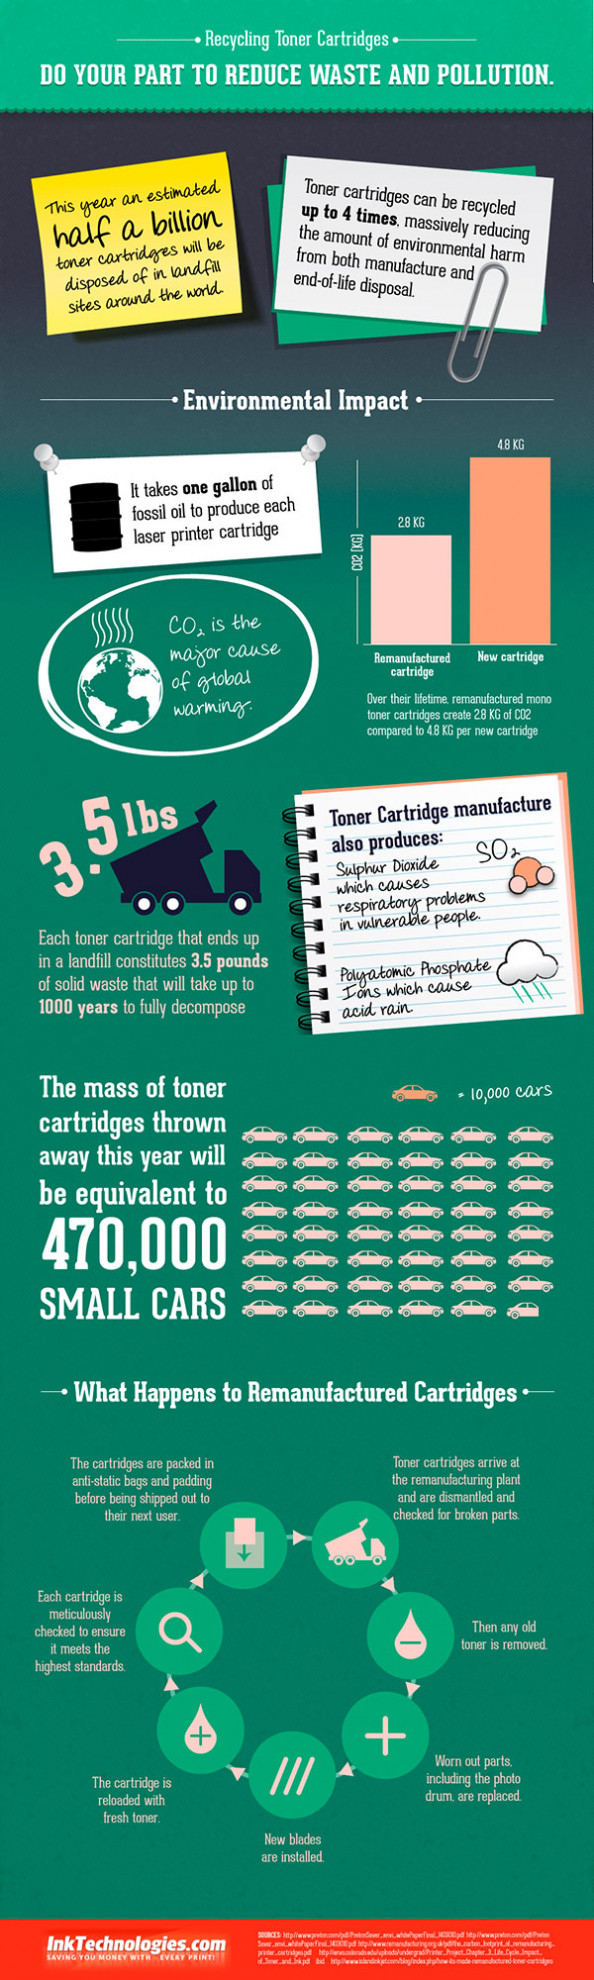 Recycling Toner Cartridges Infographic